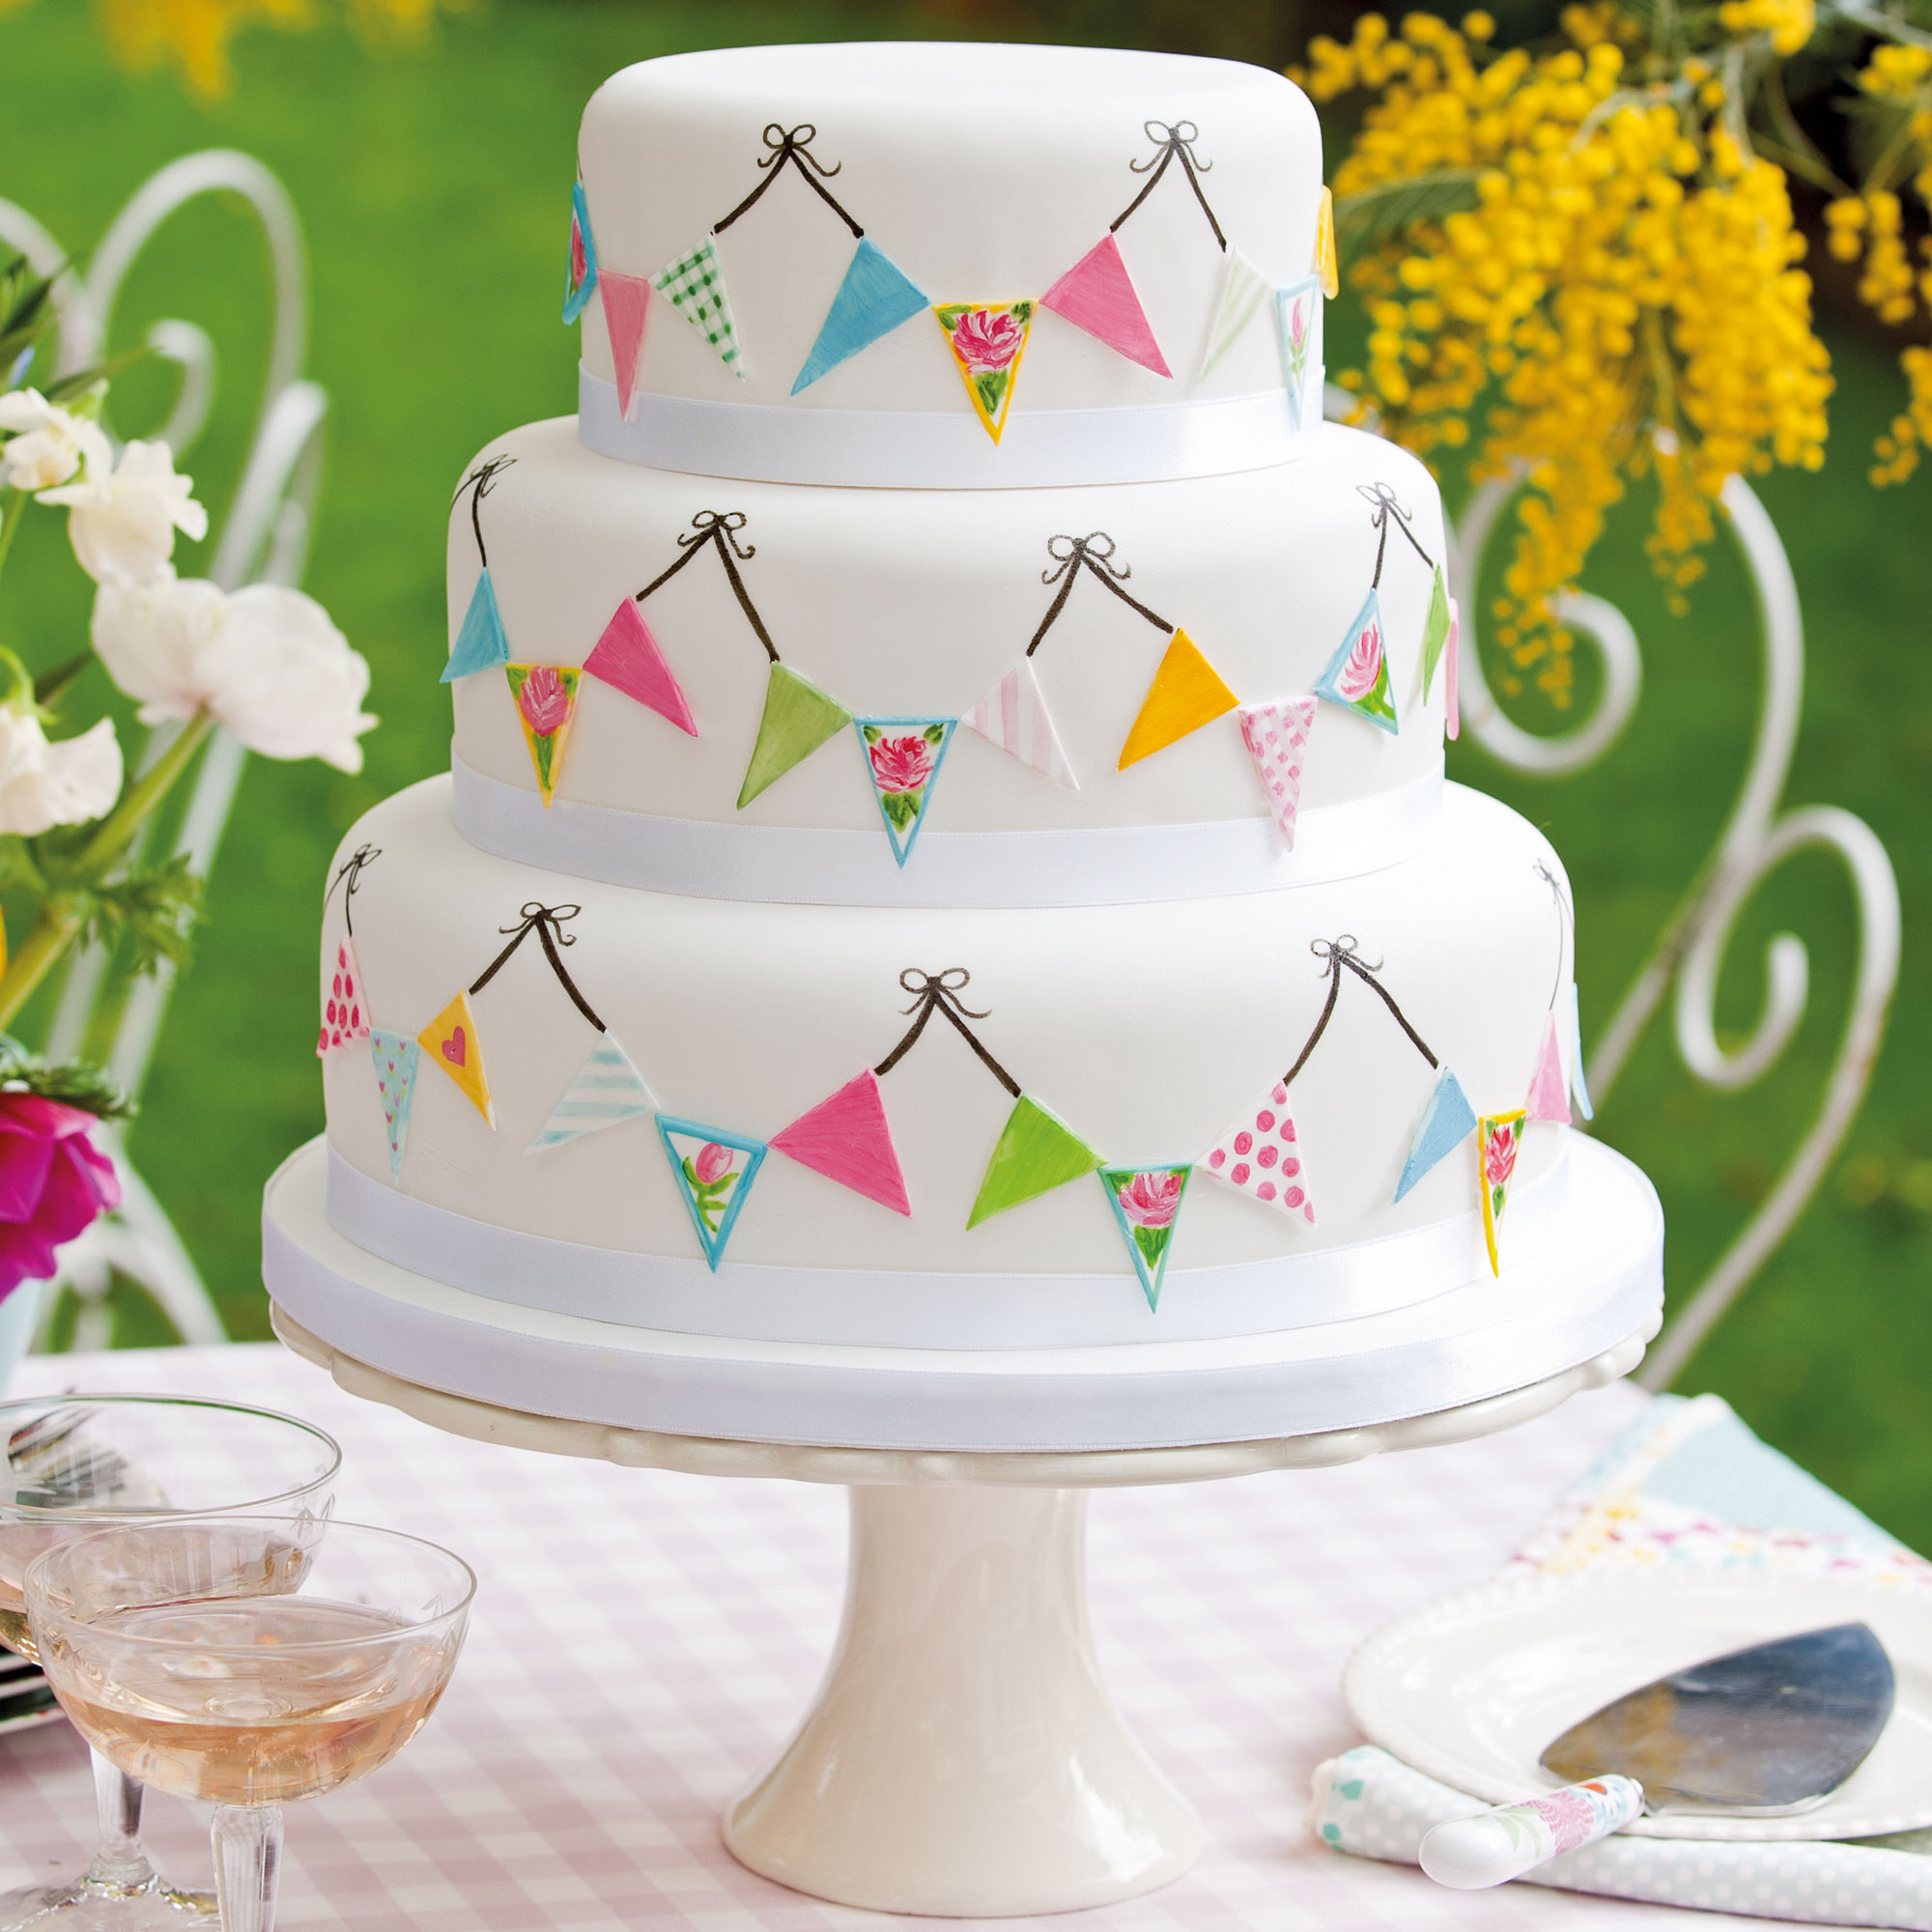 Summer Fete Wedding Cake - Woman And Home